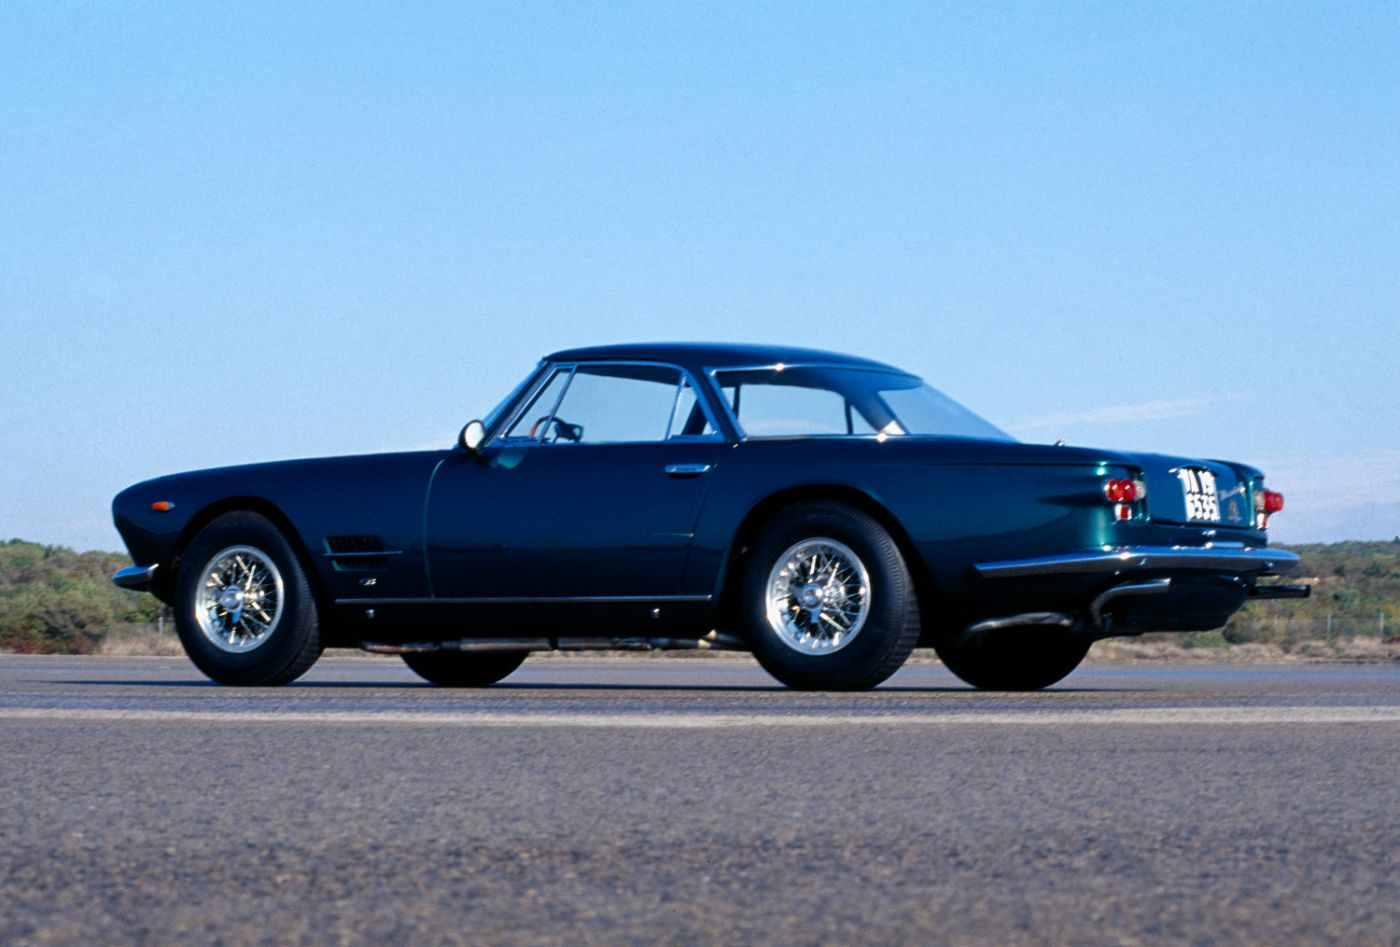 1957 Maserati 5000 GT - exterior view of the classic car model in blue